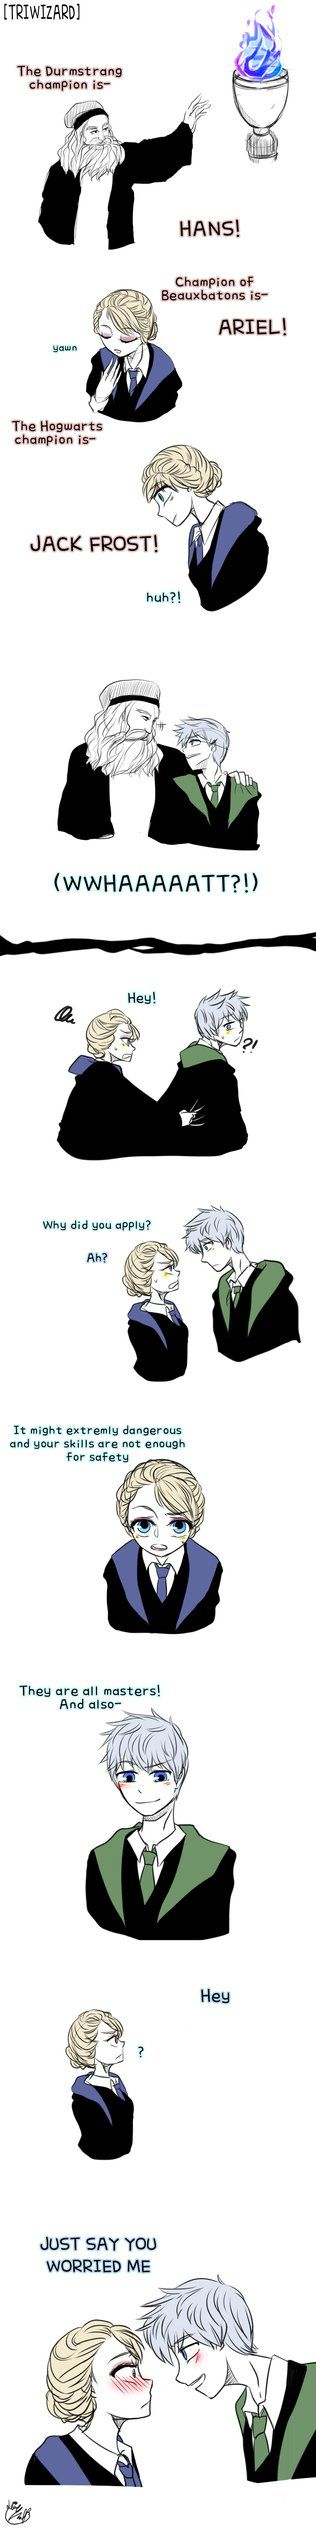 Triwizard-Champion Selection by Lime-Hael on deviantART